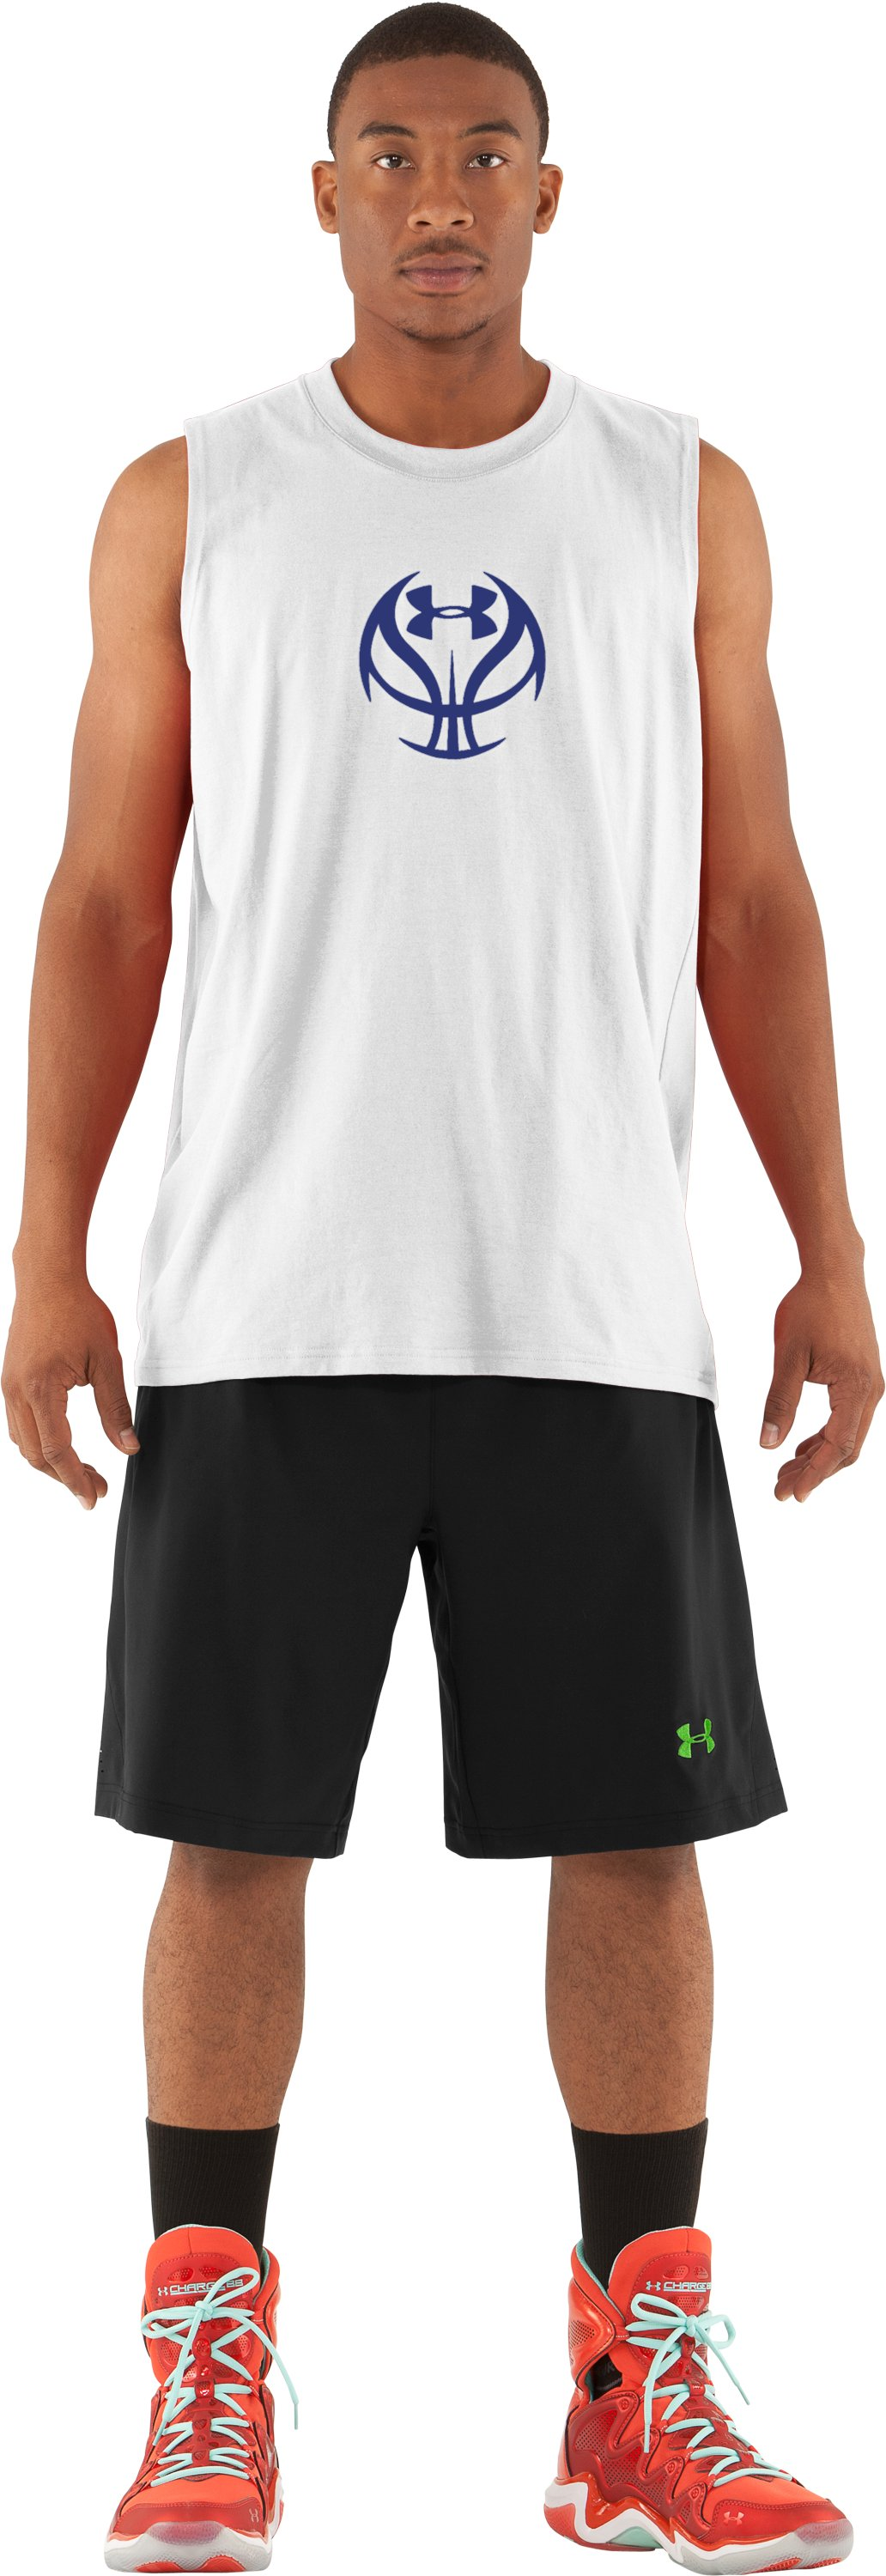 Men's UA Baller Sleeveless T-Shirt, White